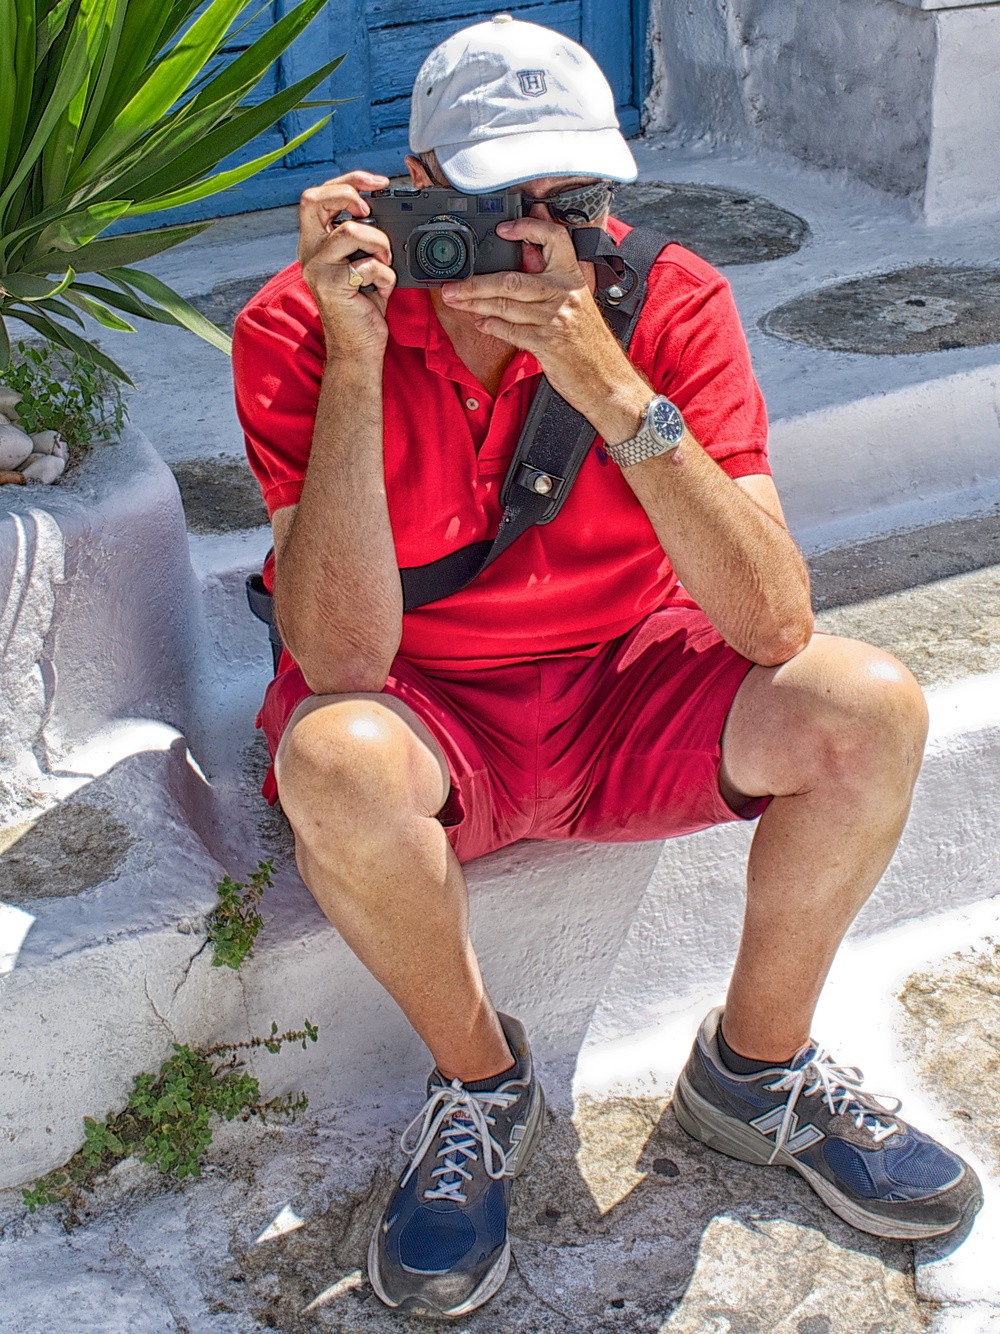 Caught in the act: Street photographer Evans caught behind the Leica Monochrom. Taken with Sony RX1